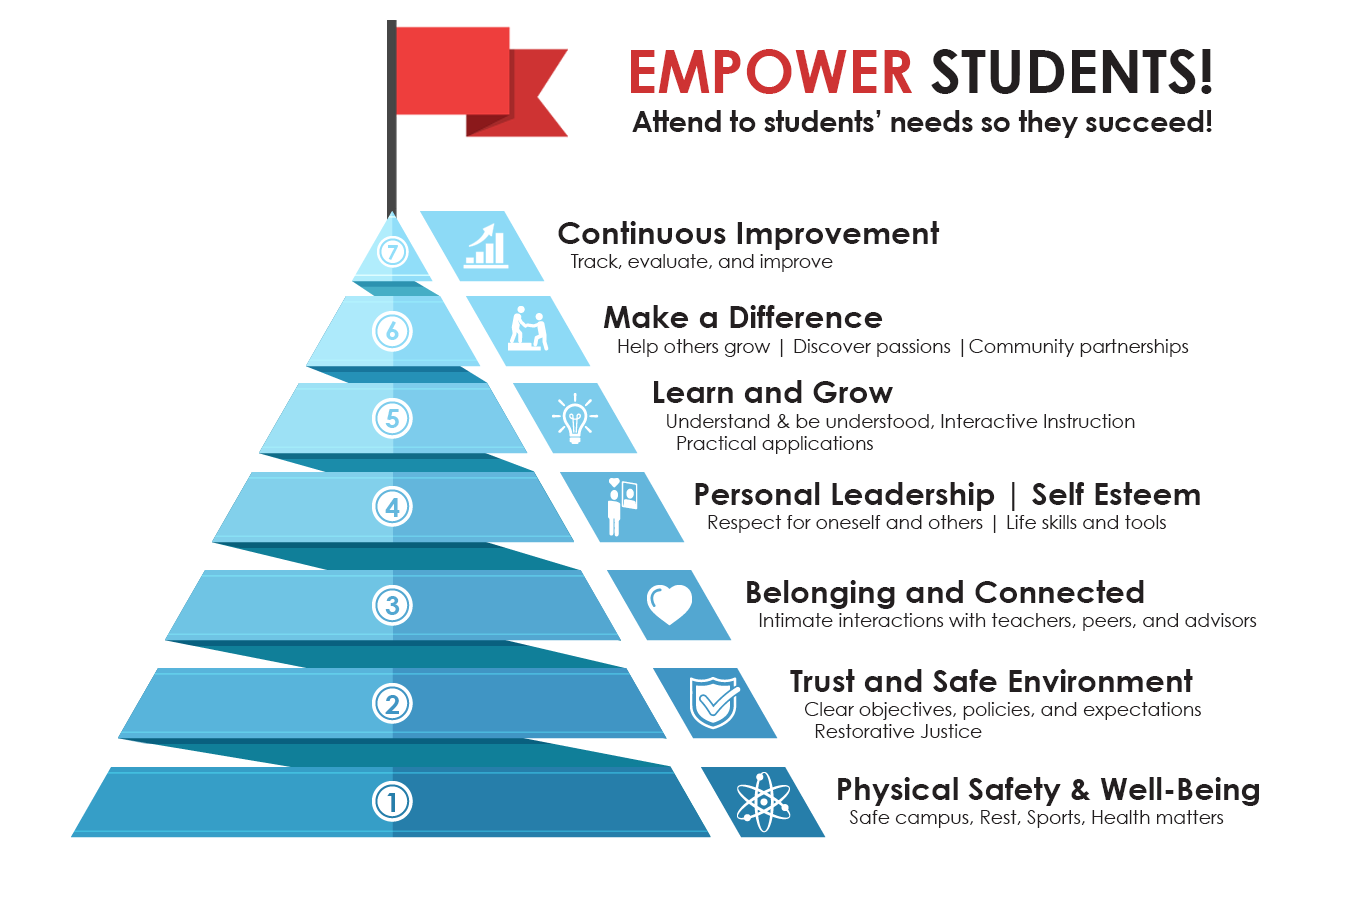 The Pyramid of Student Needs to Succeed